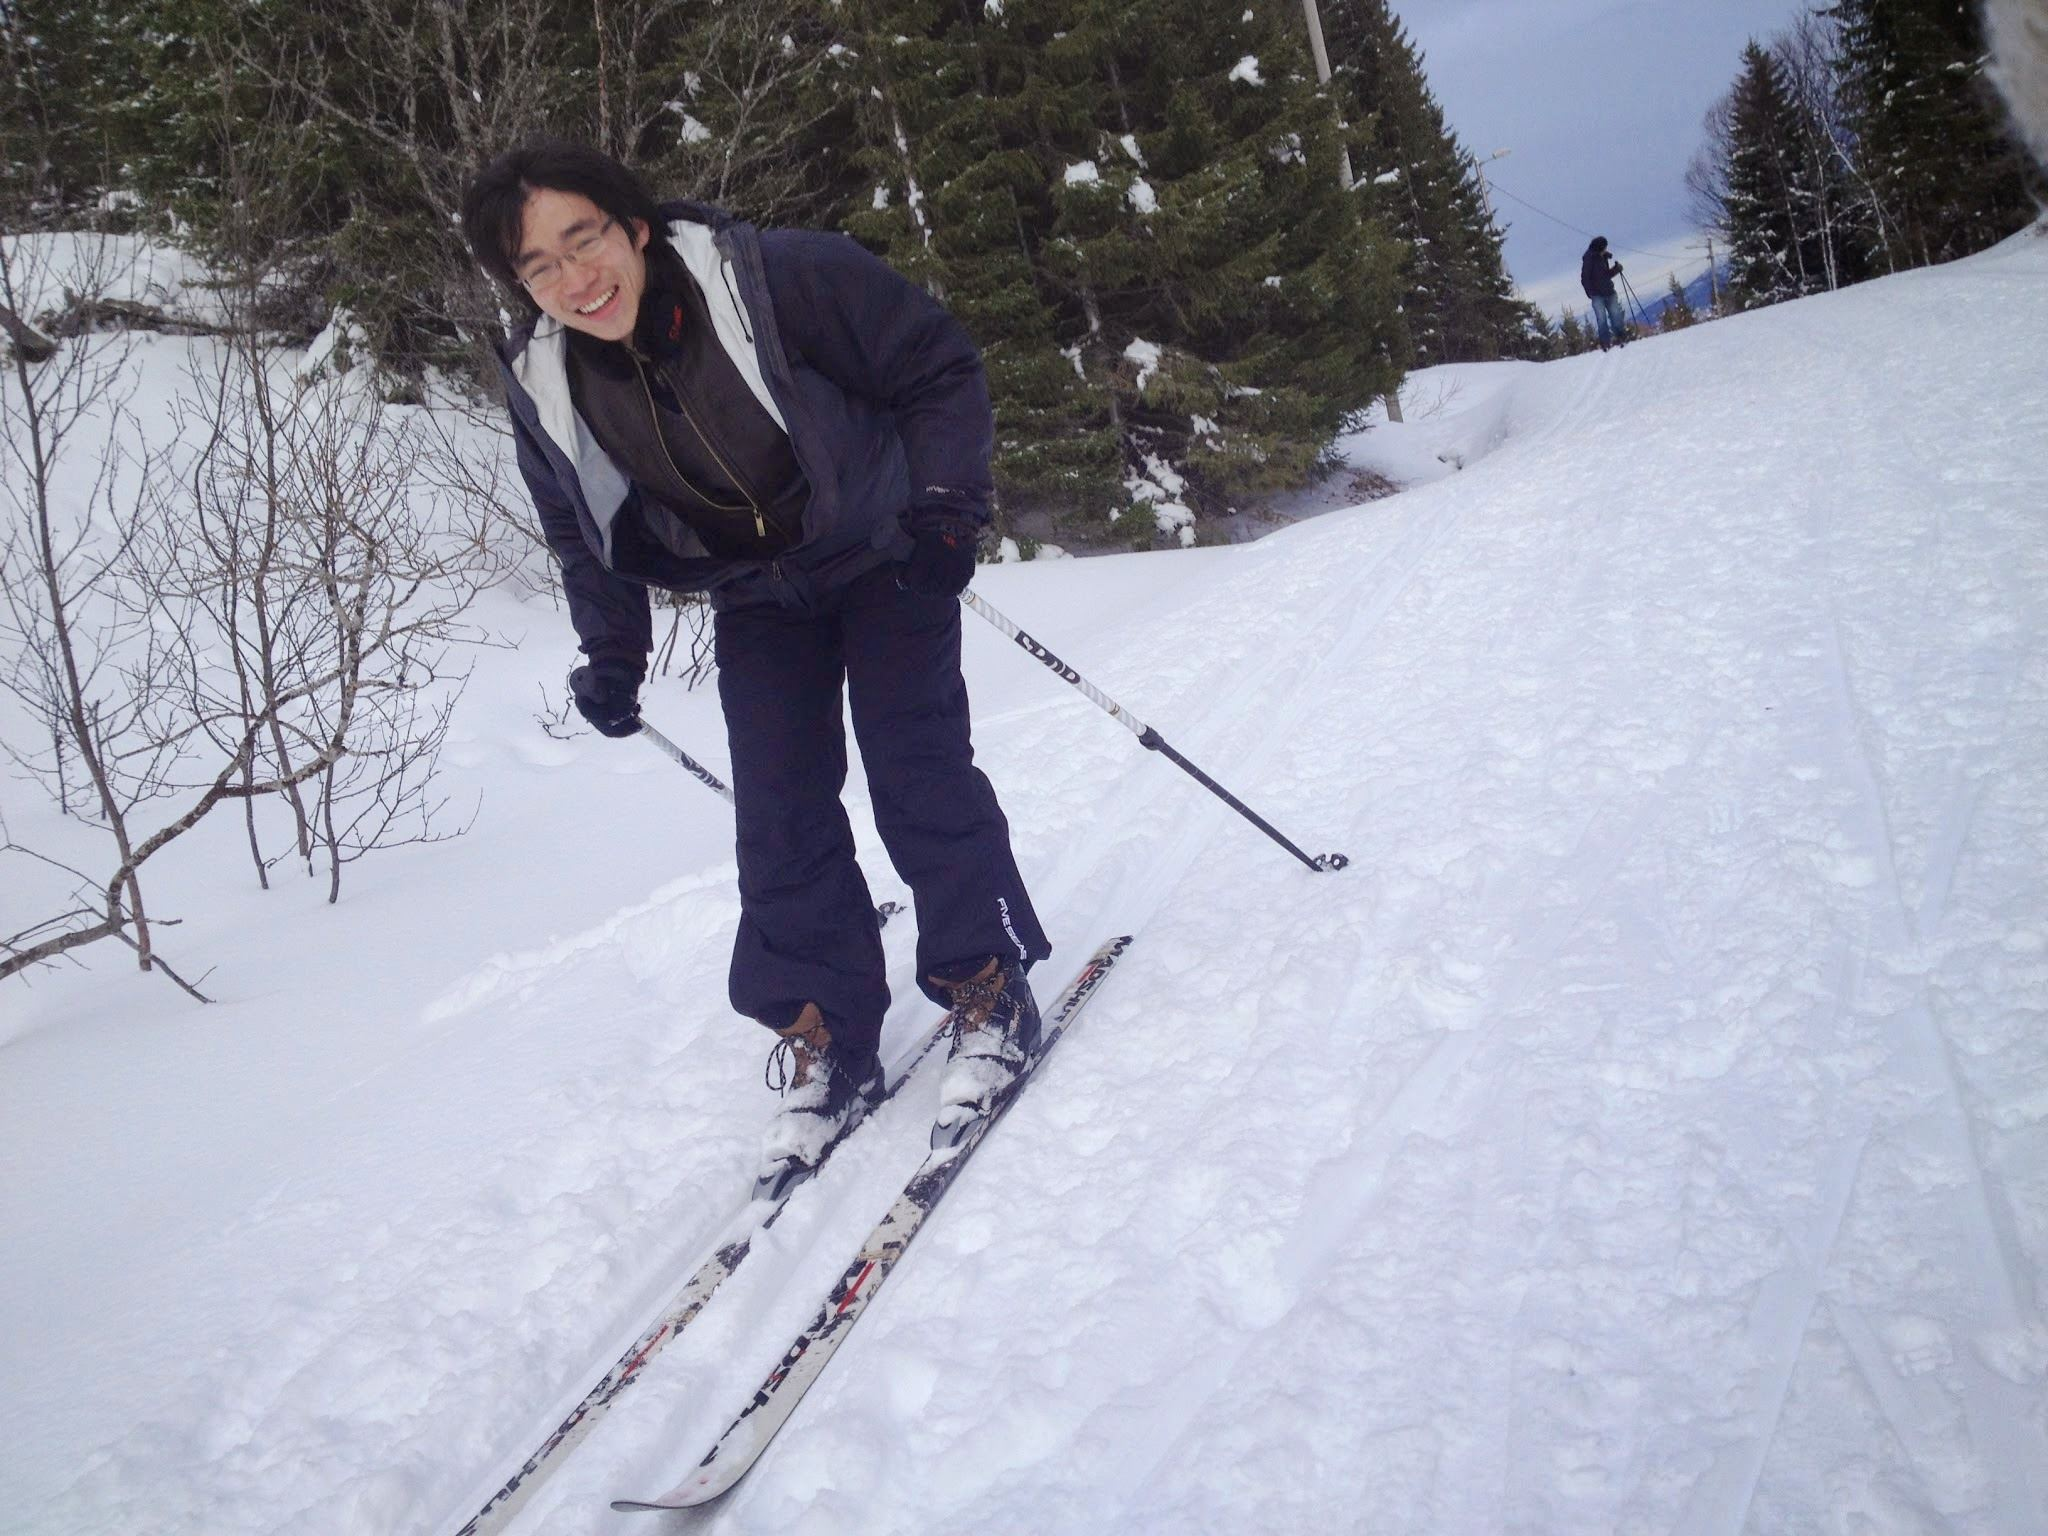 Cross Country Skis For Adults